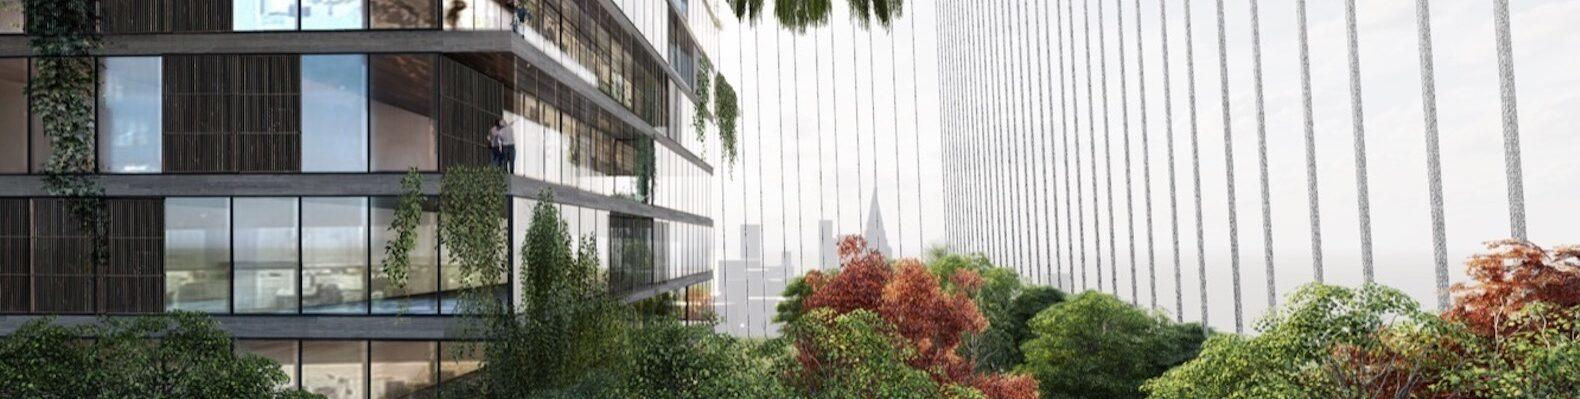 rendering of skyscraper surrounded by plants and steel cables